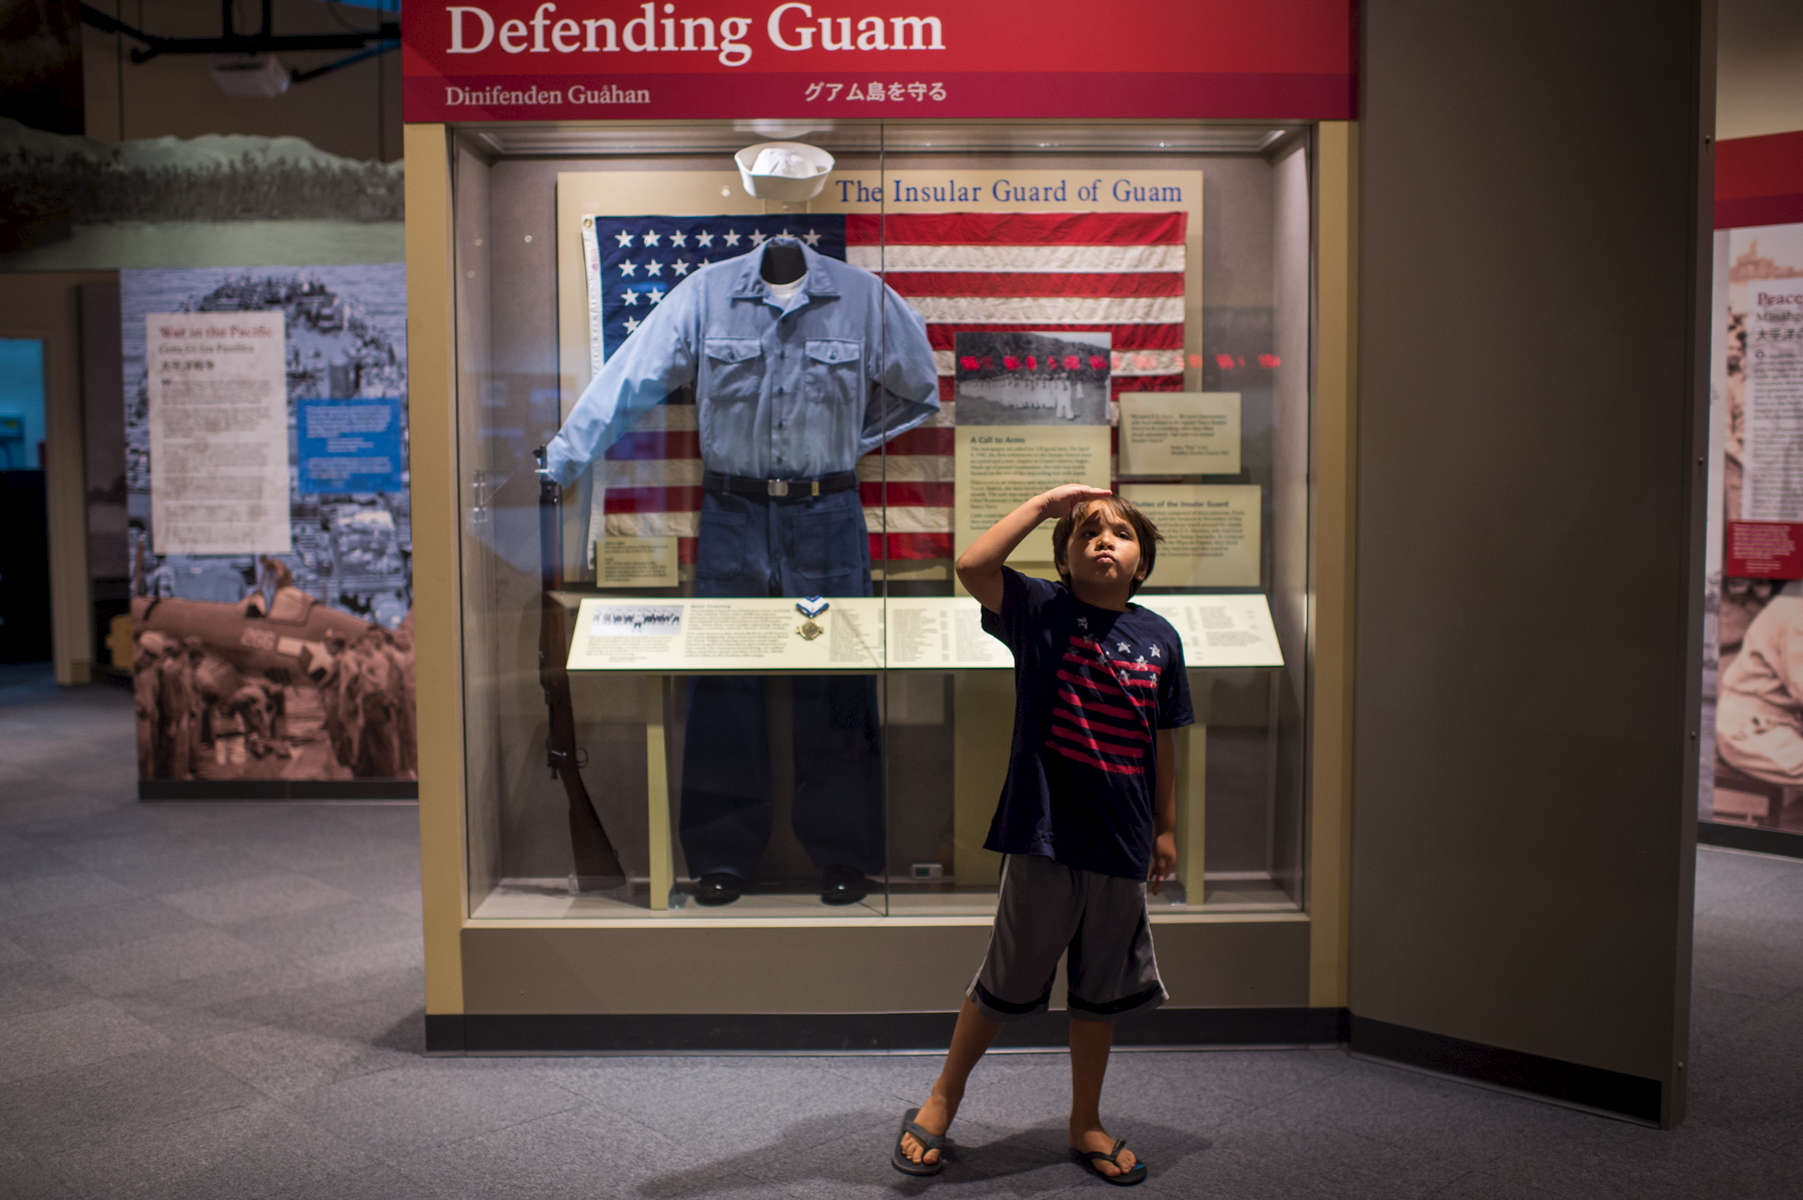 Gianni Que, 7, salutes his mother Genesa while one a visit to the War in the Pacific National Historical Park museum on Guam. (Aug 10, 2017)Photo by Nancy Borowick